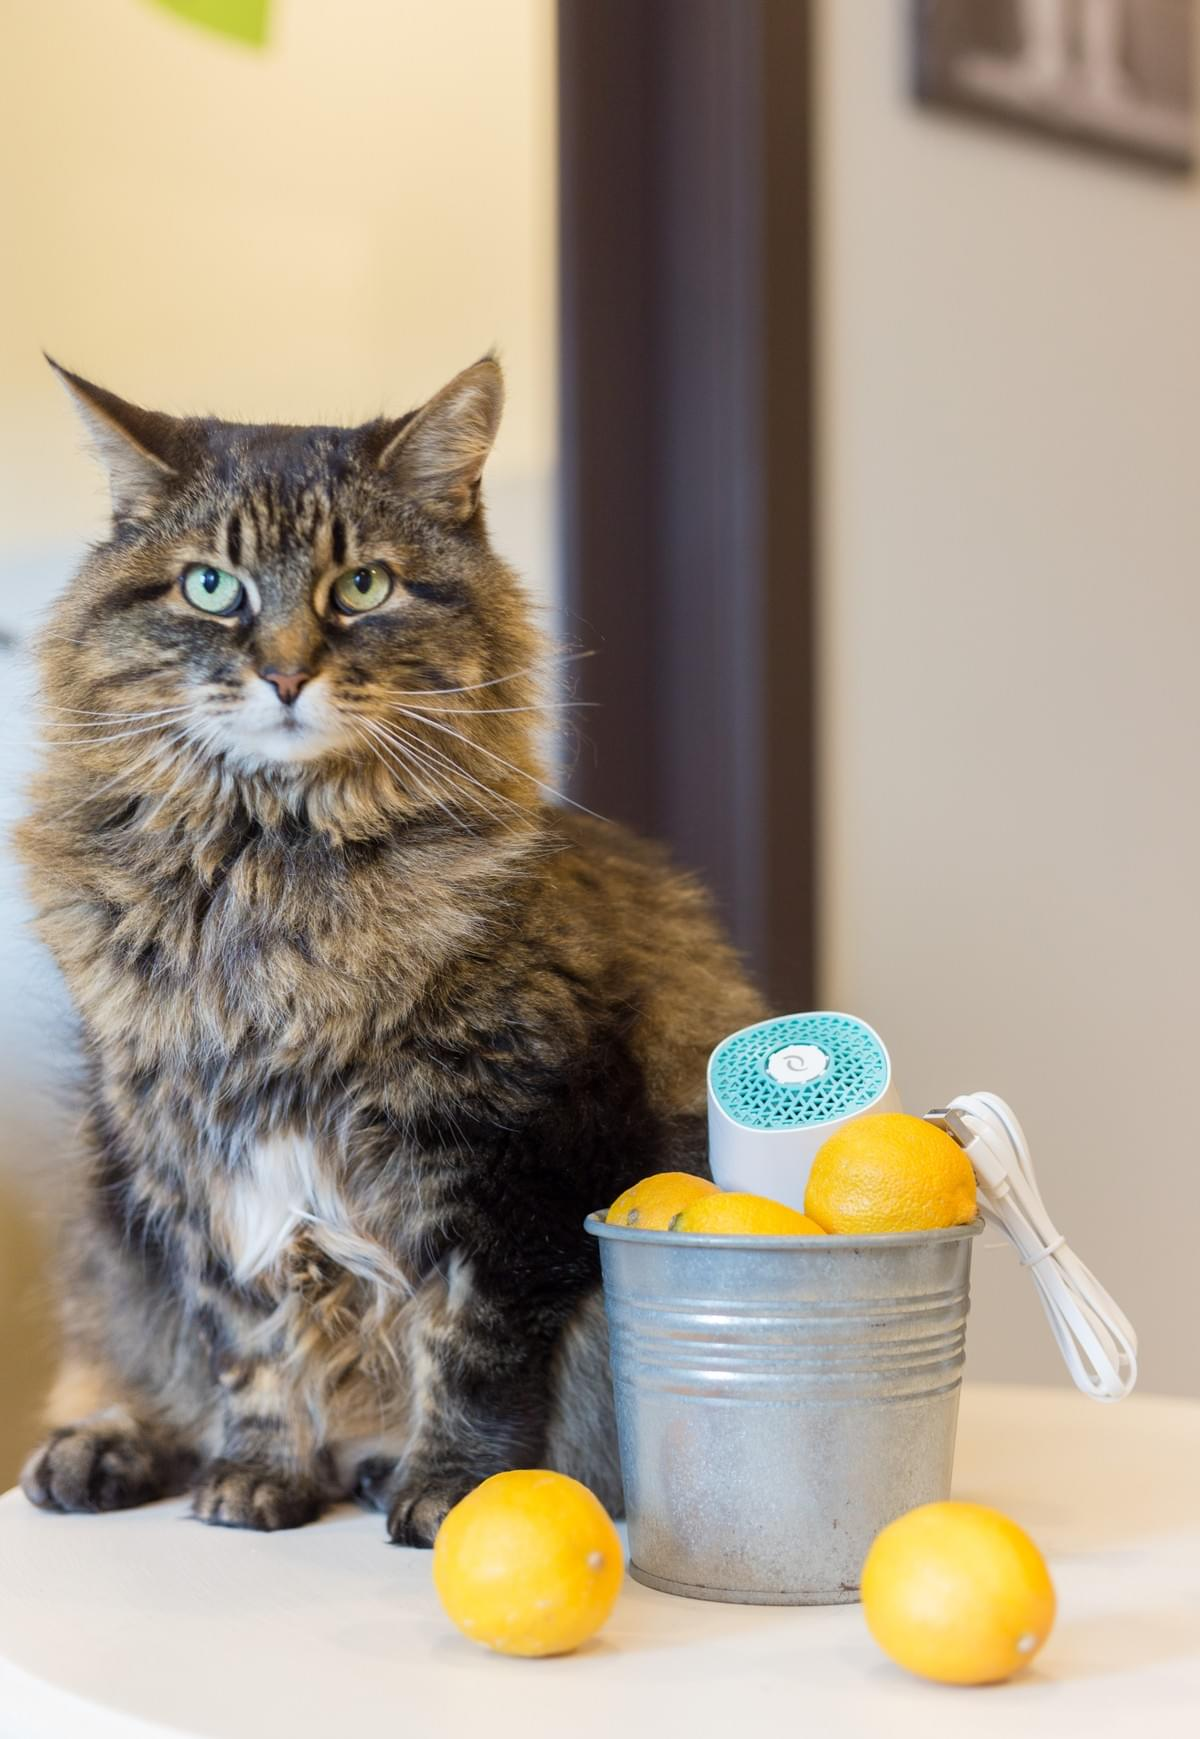 cat posing with ventifresh pet odor eliminator and lemons